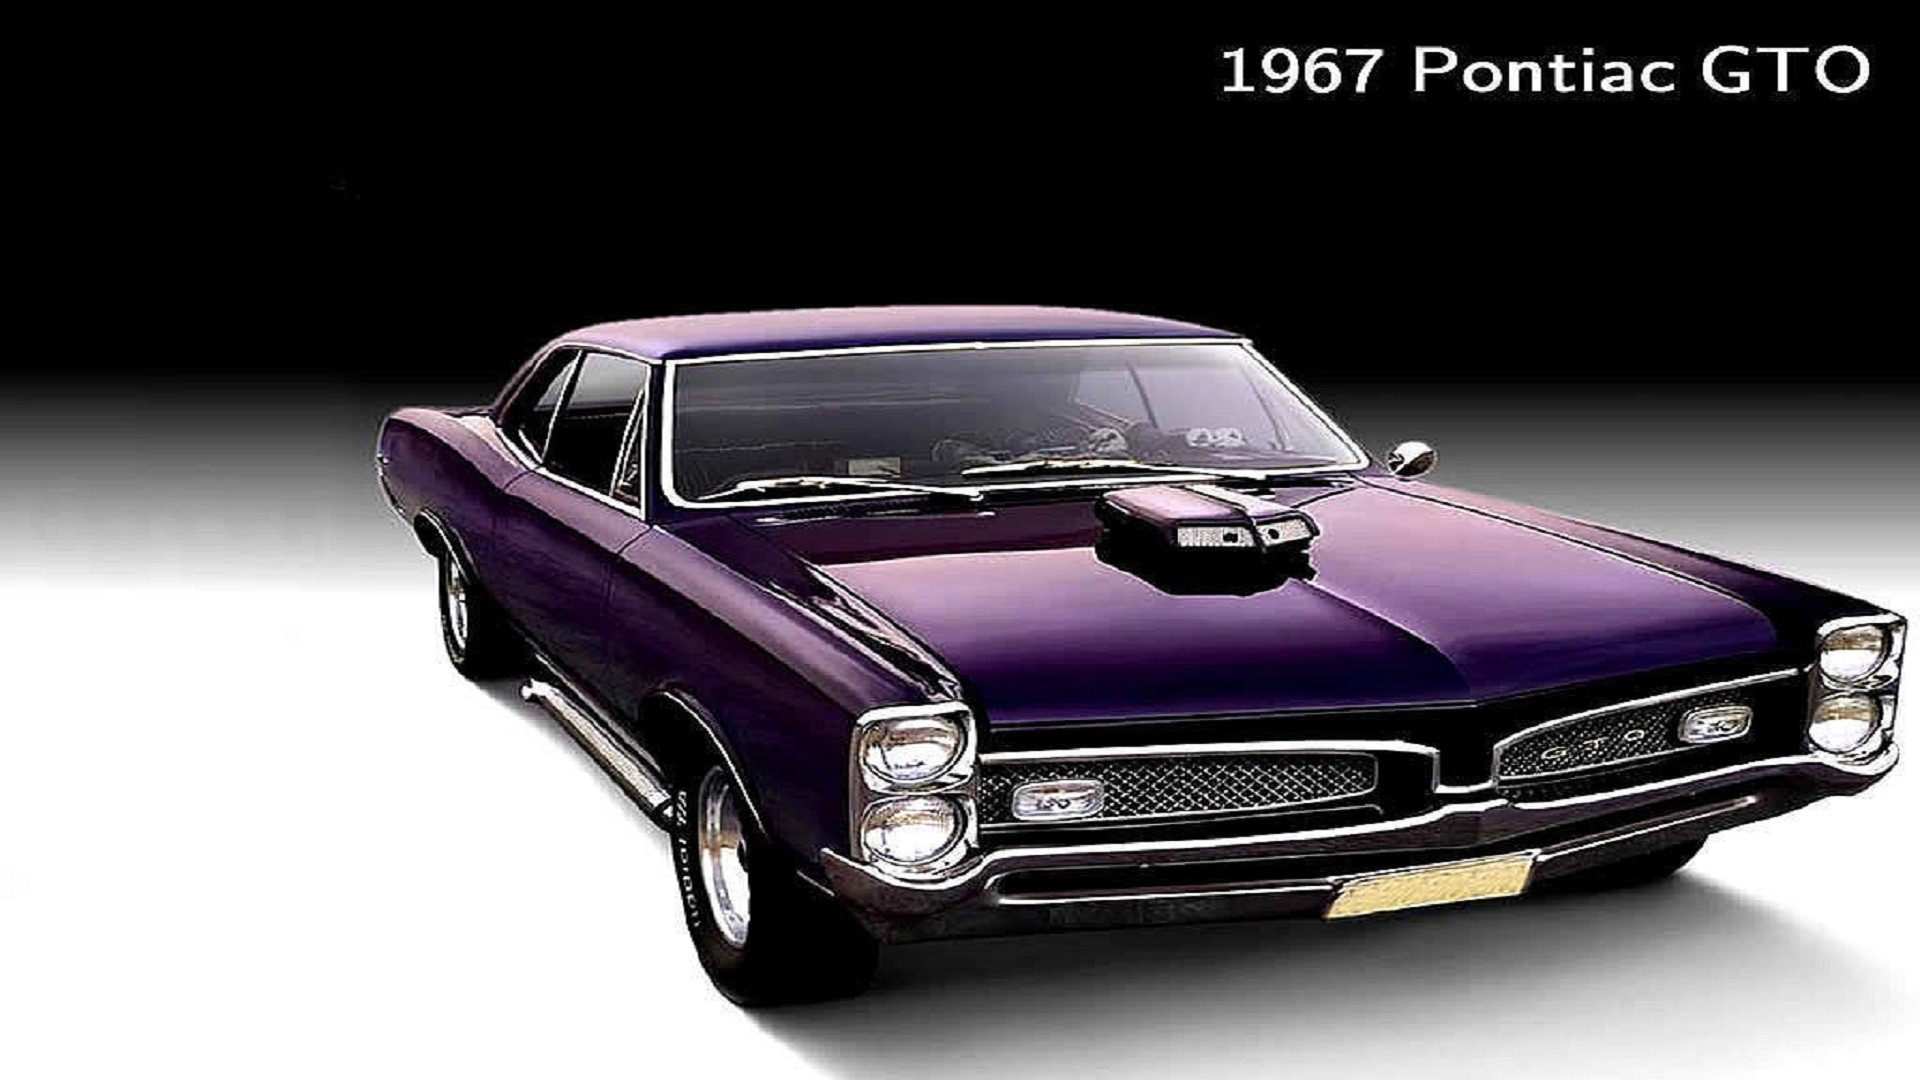 Muscle car wallpaper 1920x1080 70 images - Cars hd wallpapers for laptop ...